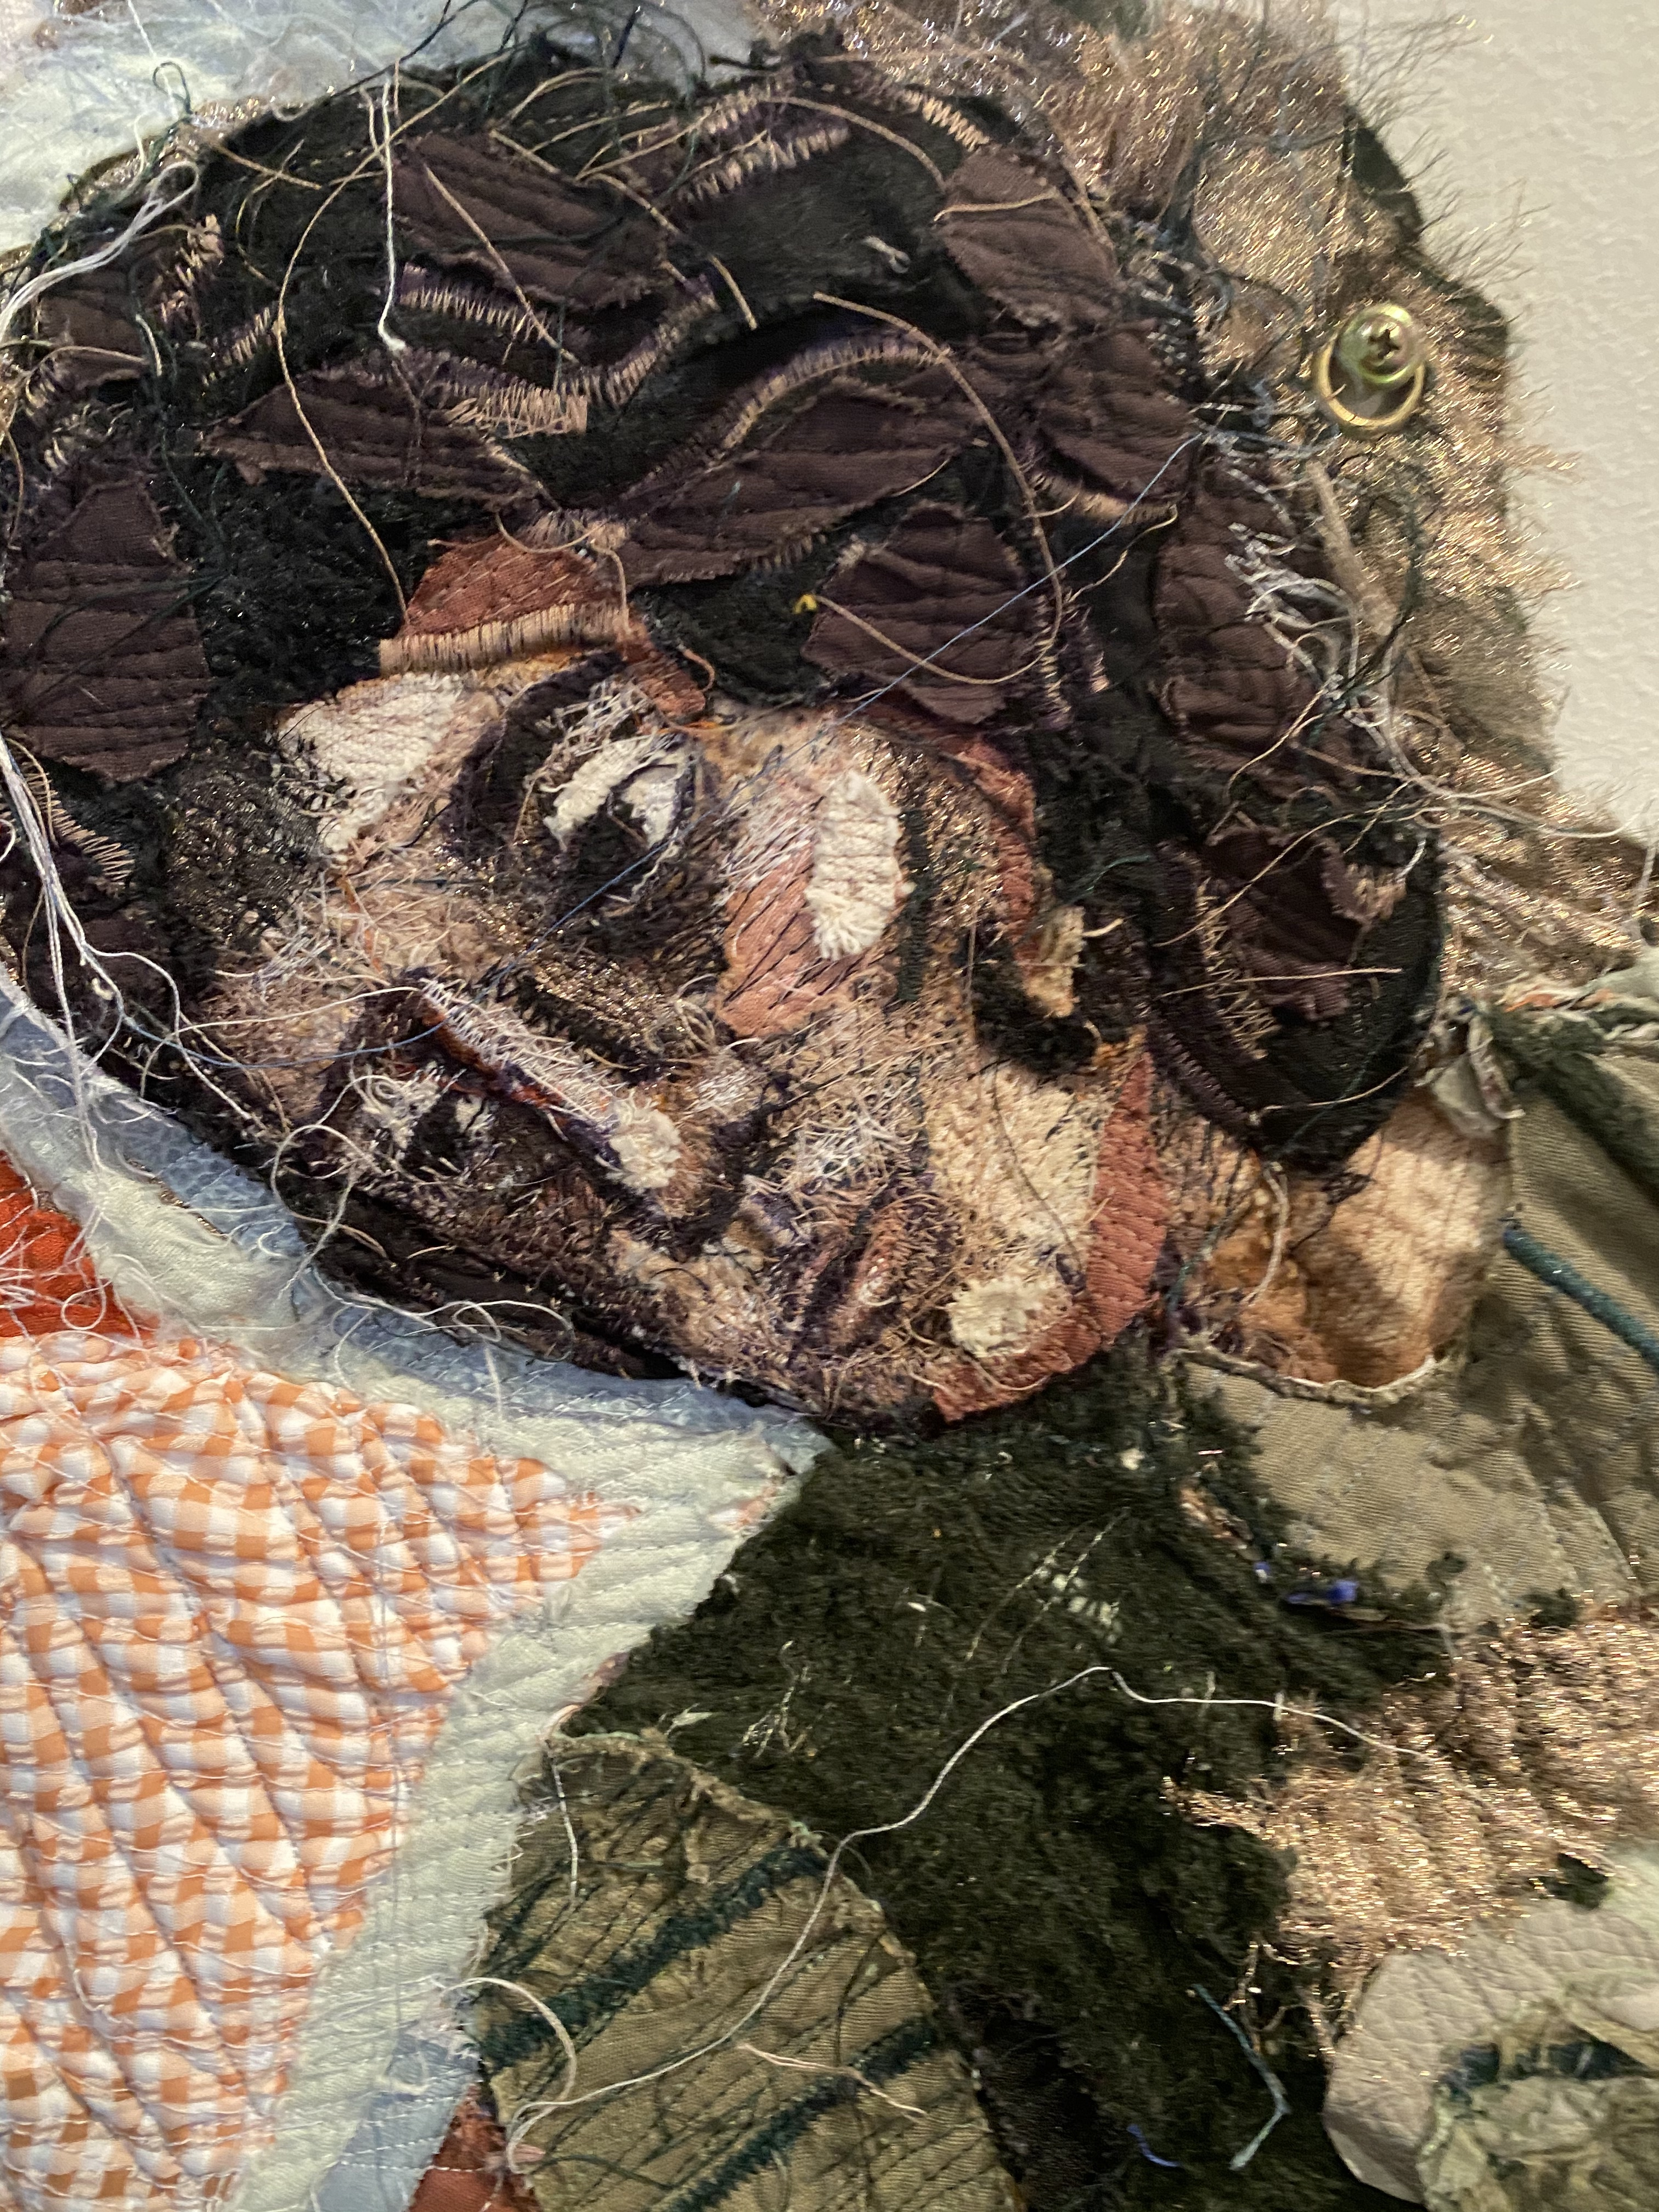 Detail from Julia Gutman's entry to the Ramsay Art Prize, where two women made out of fabric sit on a picnic blanket